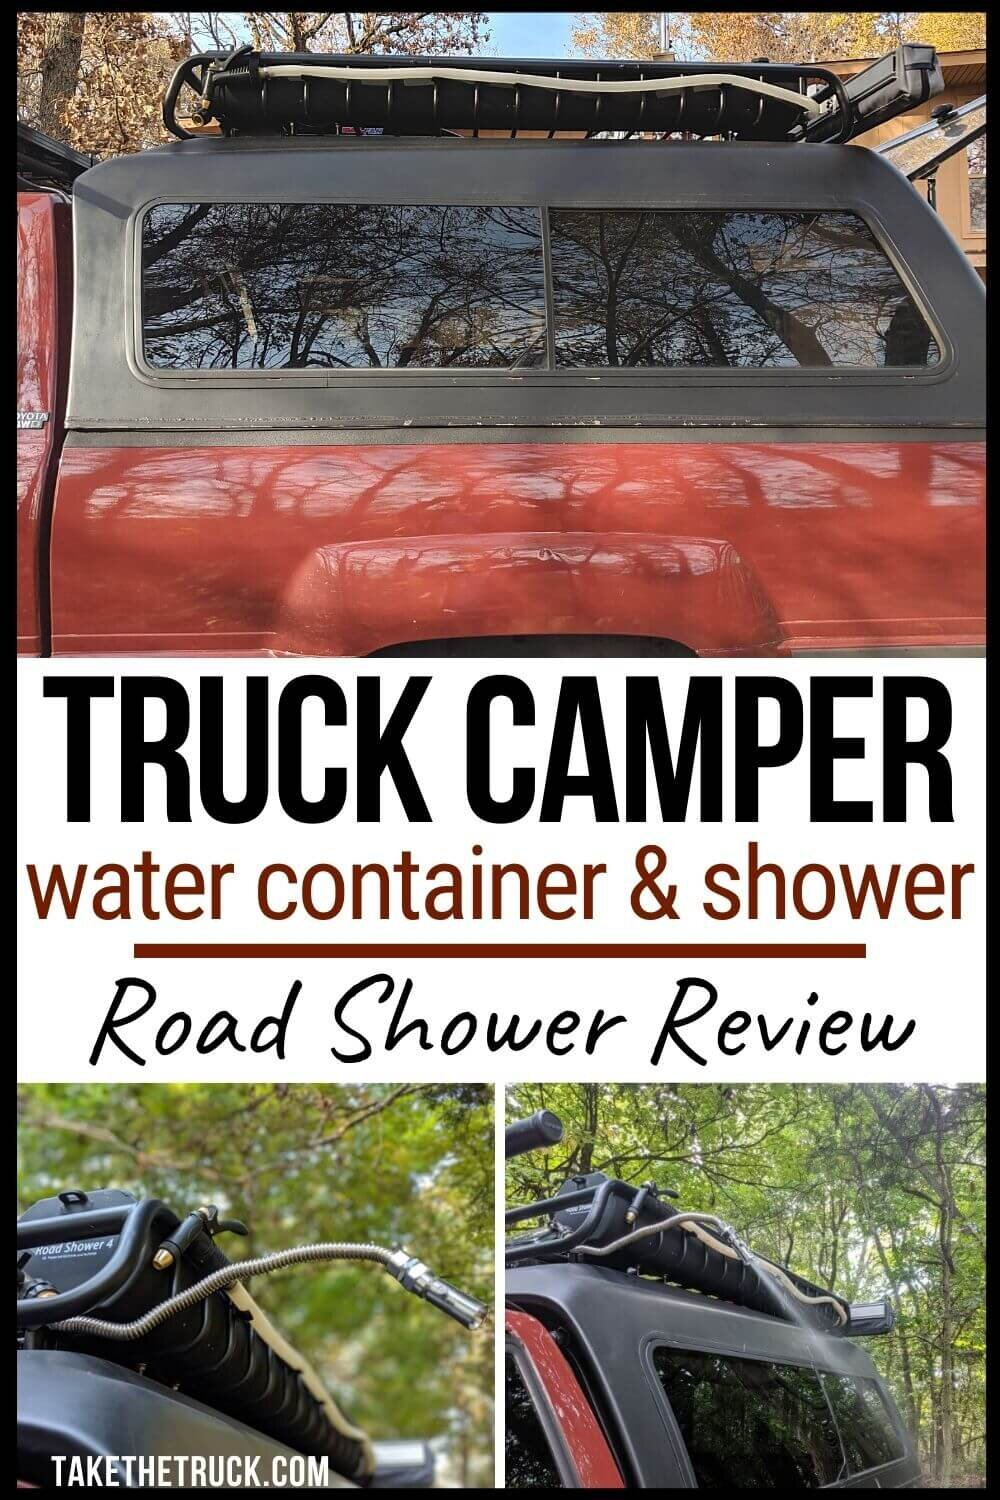 The Road Shower 4 is a truck camping water container and shower, all in one! The Roadshower makes a great outdoor shower for your camper and doubles as water storage for drinking.